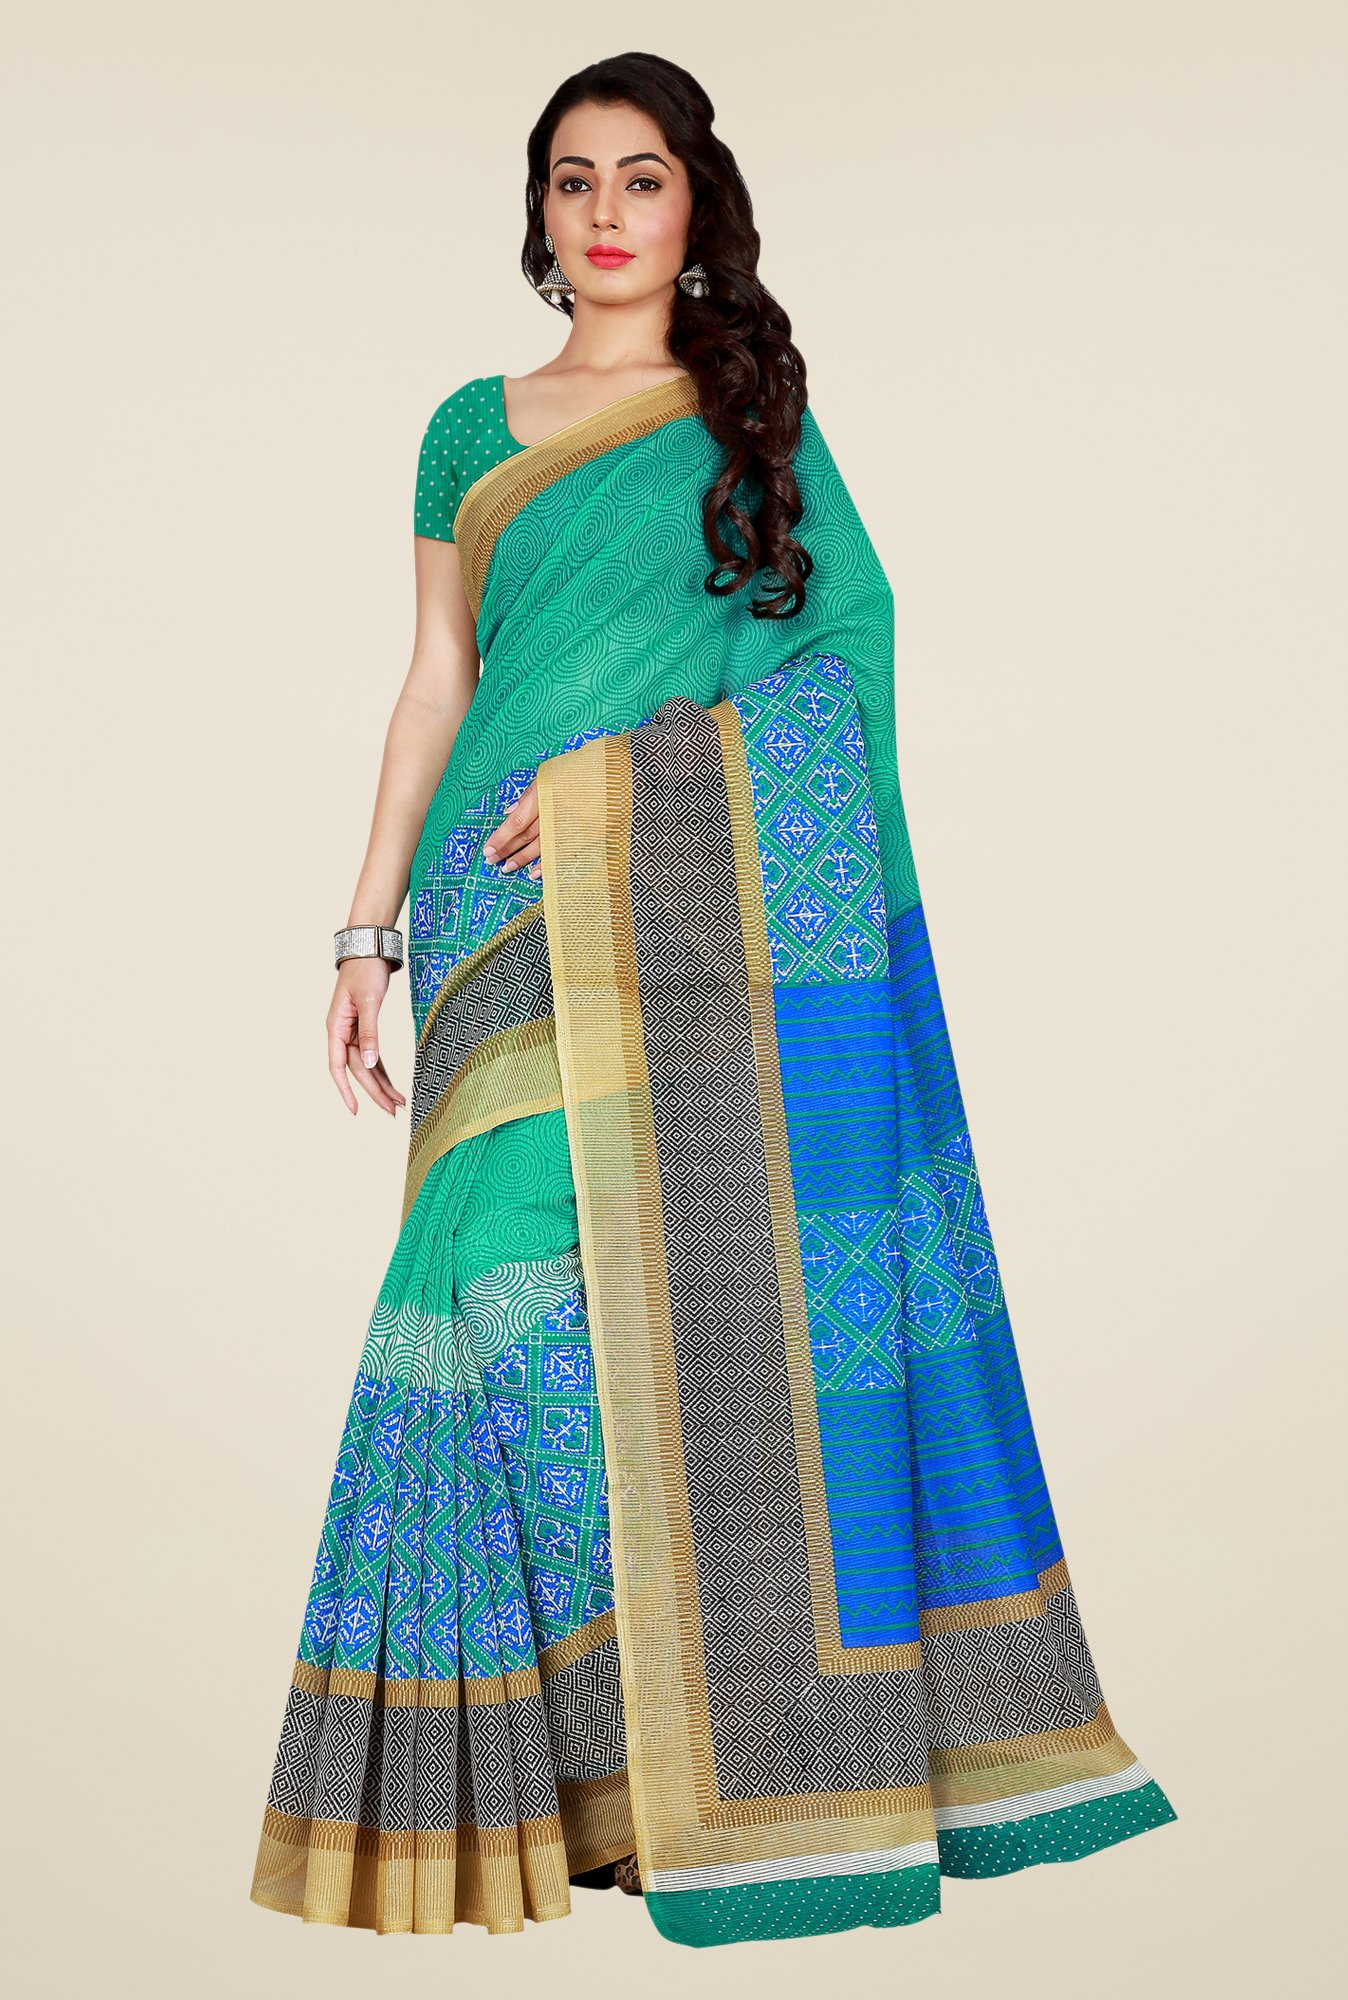 Shonaya Green & Blue Art Silk Saree